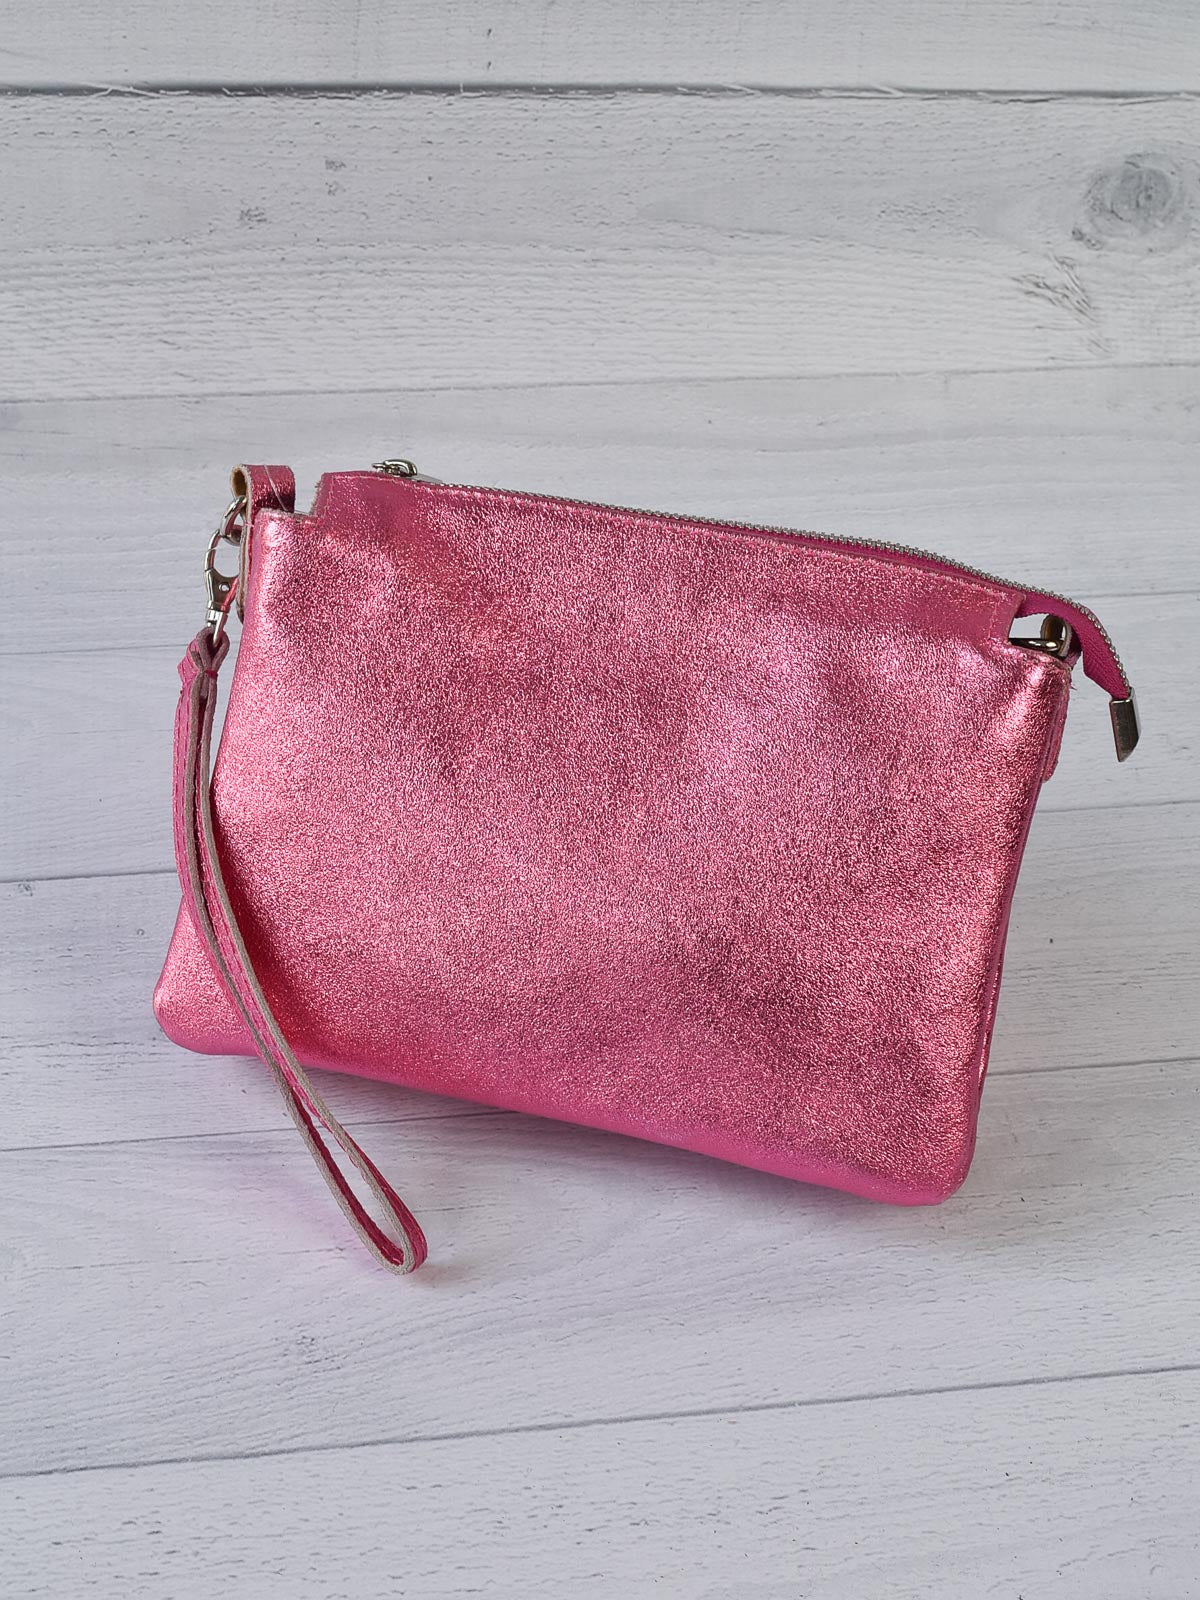 Jijou Capri Elvira Metallic Leather Crossbody Bag, Pink - Statement Boutique